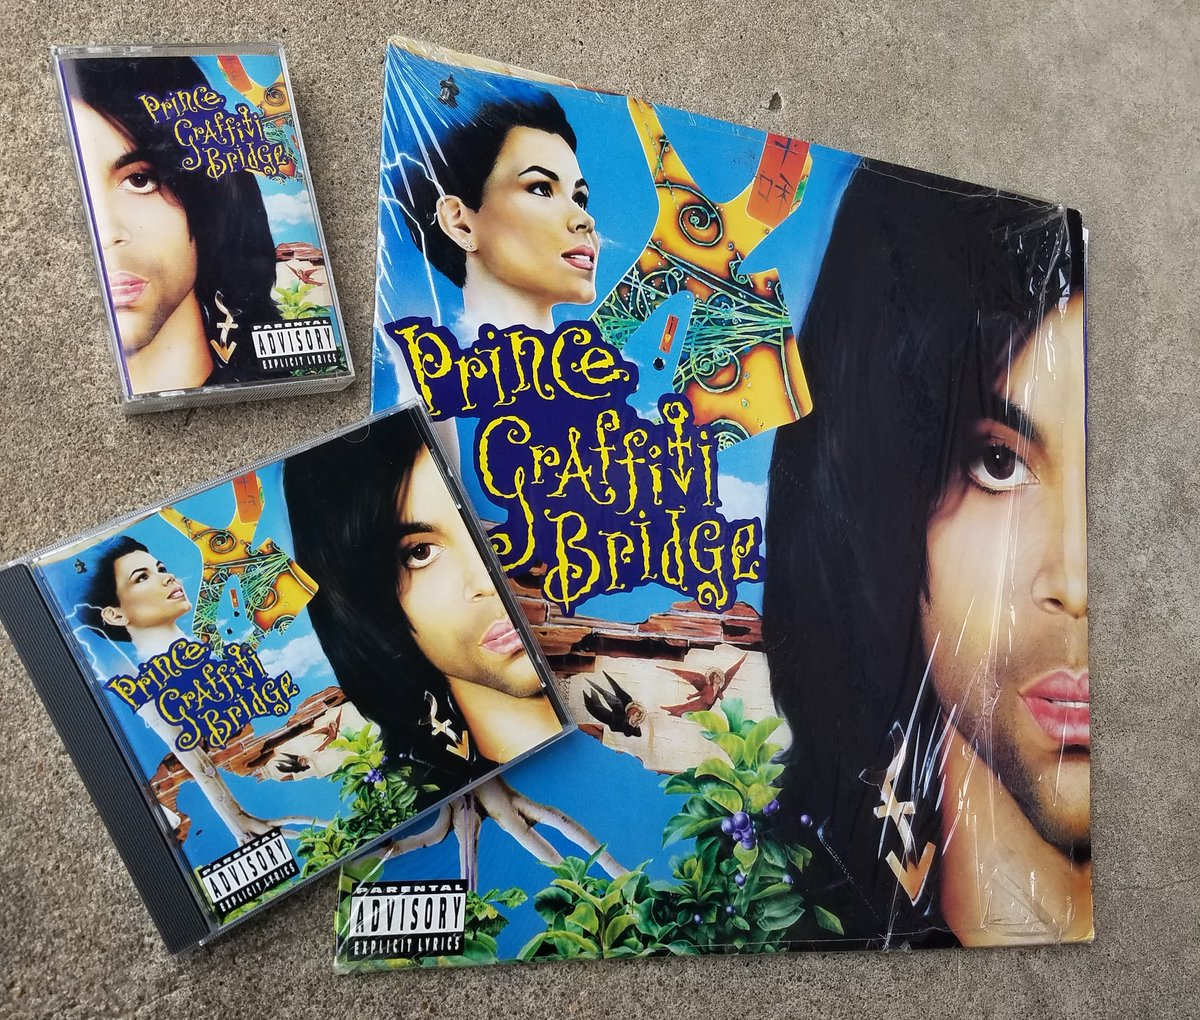 #NowPlaying Graffiti Bridge   Graffiti Bridge is the twelfth studio album by Prince and is the soundtrack album to the 1990 film of the same name. It was released on August 21, 1990 by Paisley Park Records and Warner Bros. Records.  #Prince4Ever  <br>http://pic.twitter.com/jdqV9No0ZQ